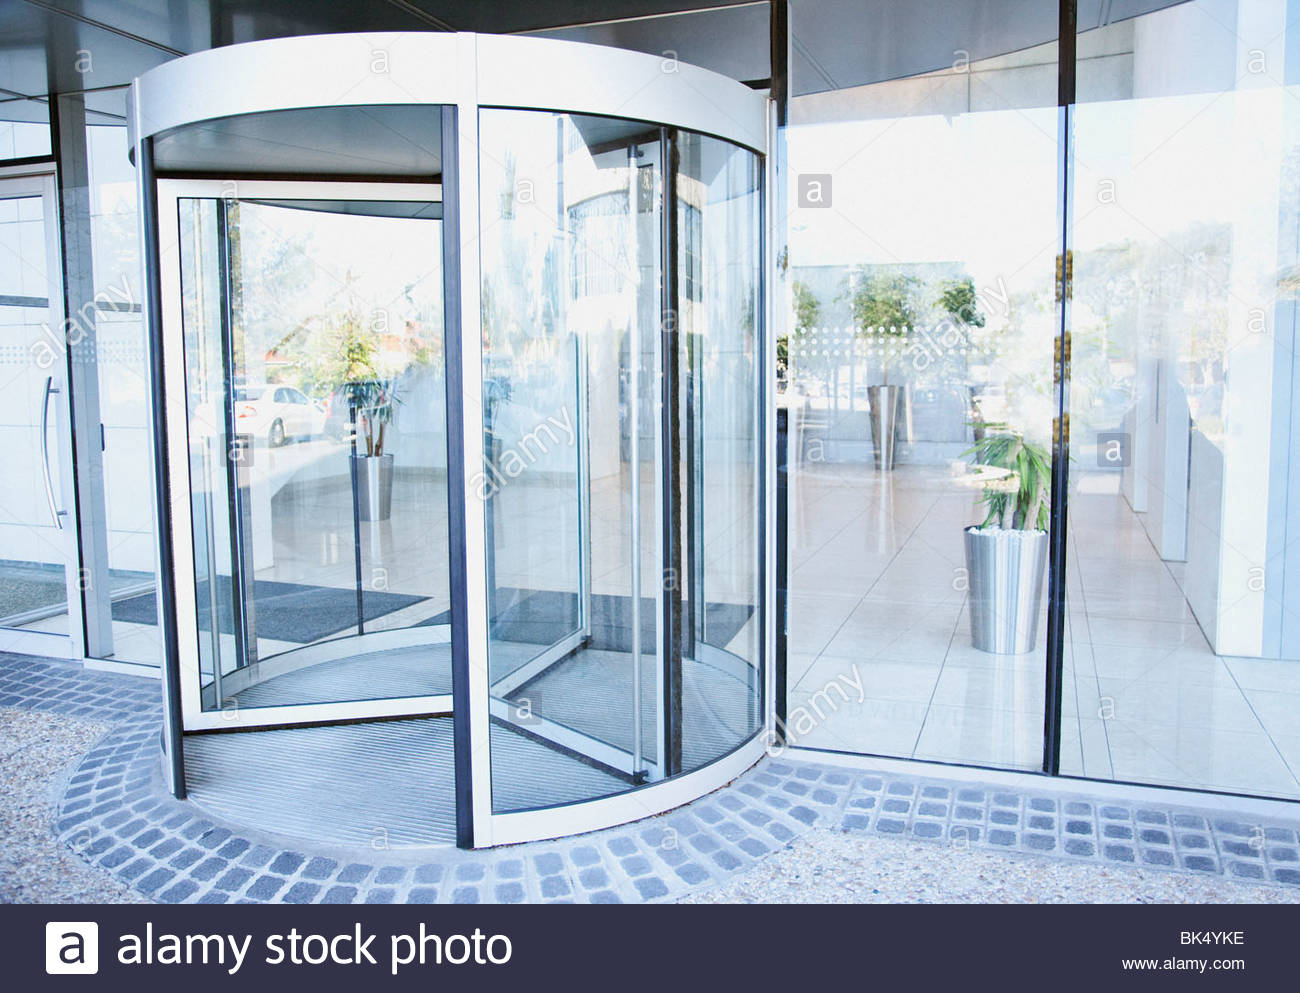 Modern Entrance With Revolving Door   Stock Image